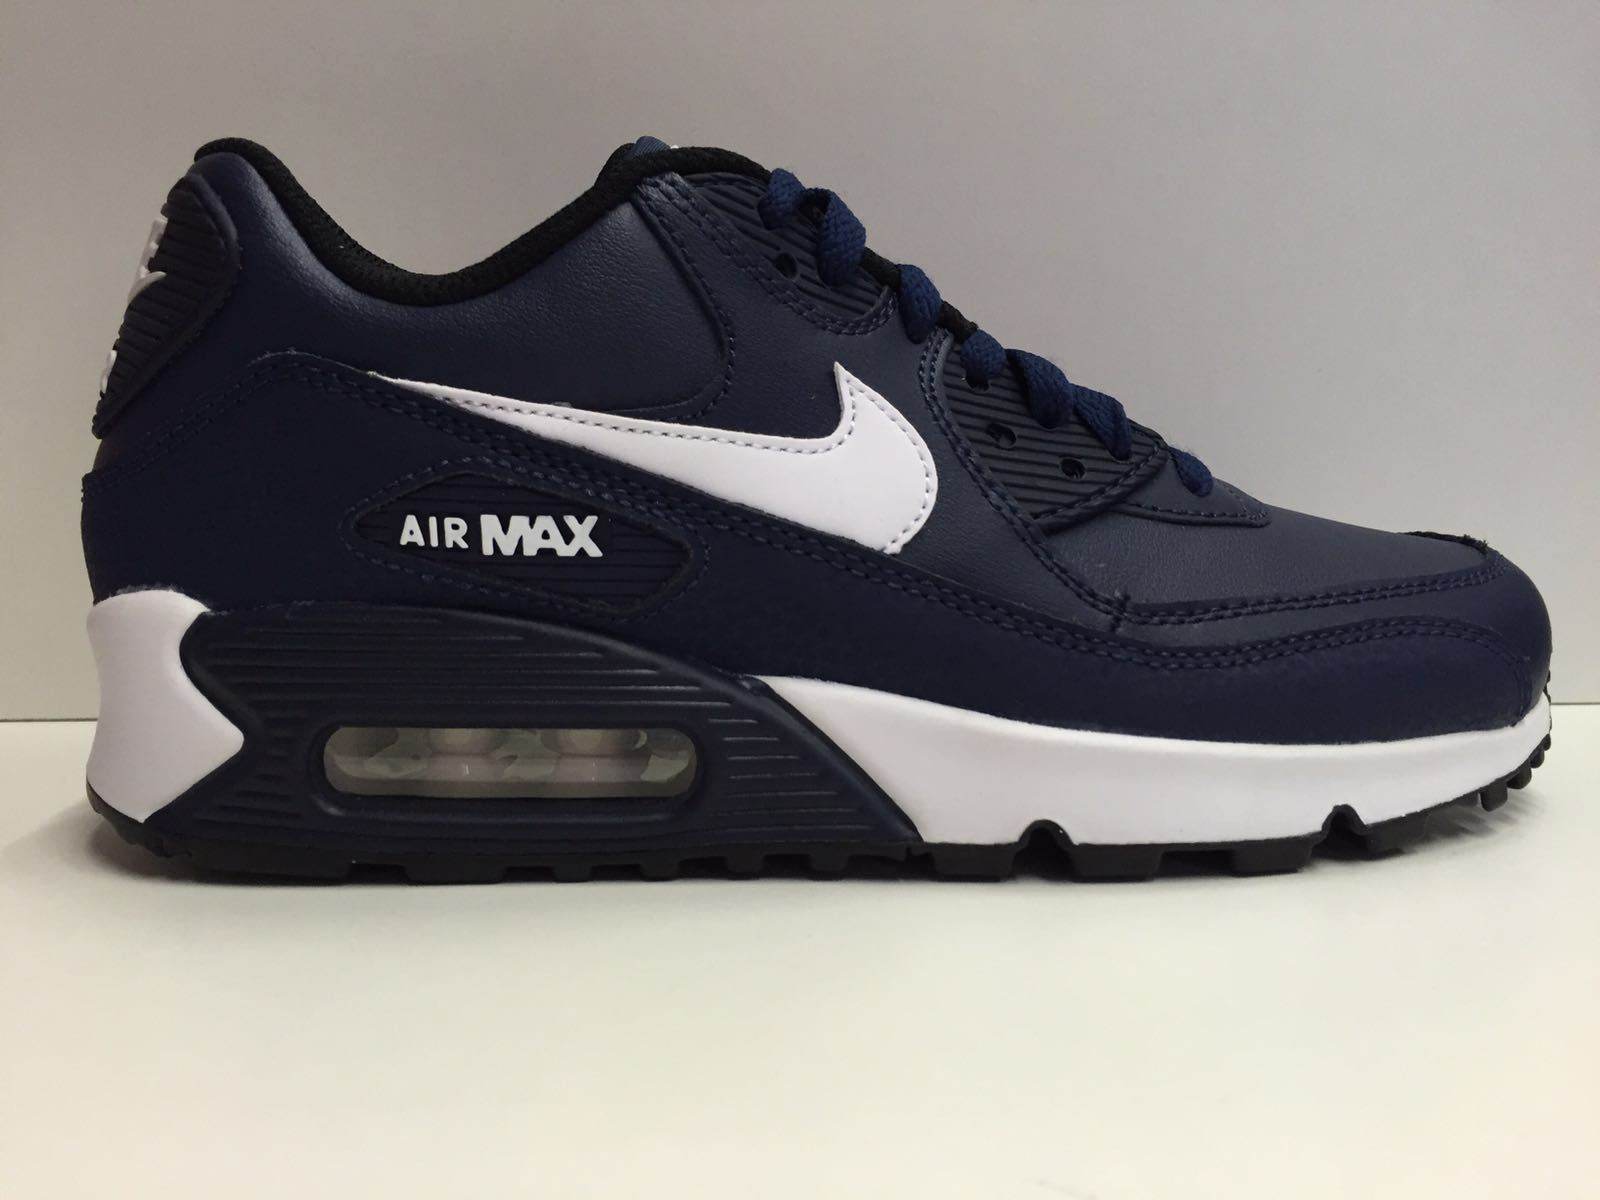 SCARPE NIKE ORIGINAL AIR MAX 90 LTR 724821 PELLE SHOES LEATHER SCARPETTE UNISEX